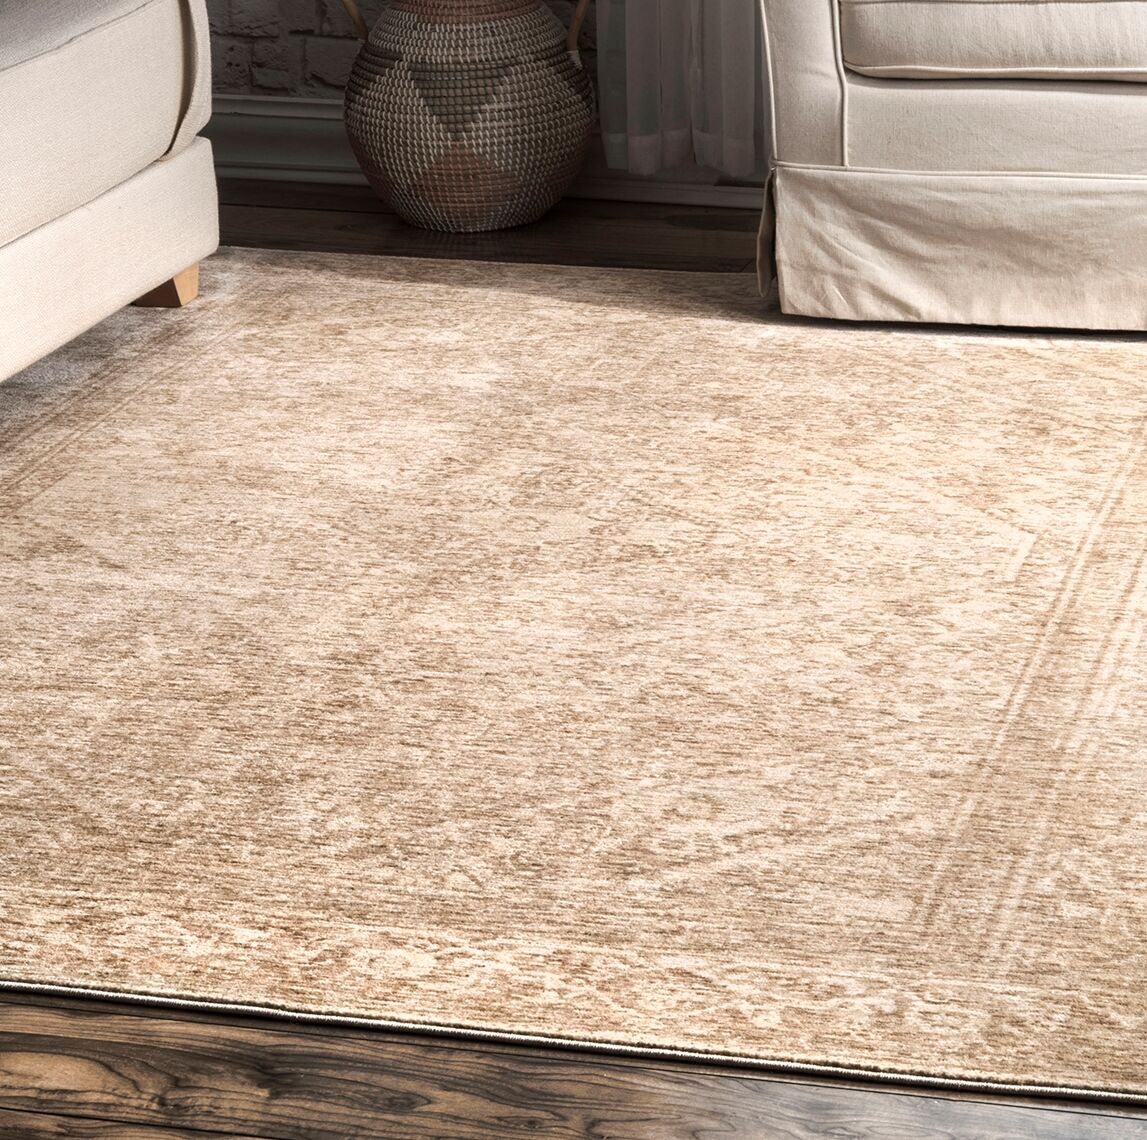 Erie Beige Area Rug Rug Size: Rectangle 5' x 8'